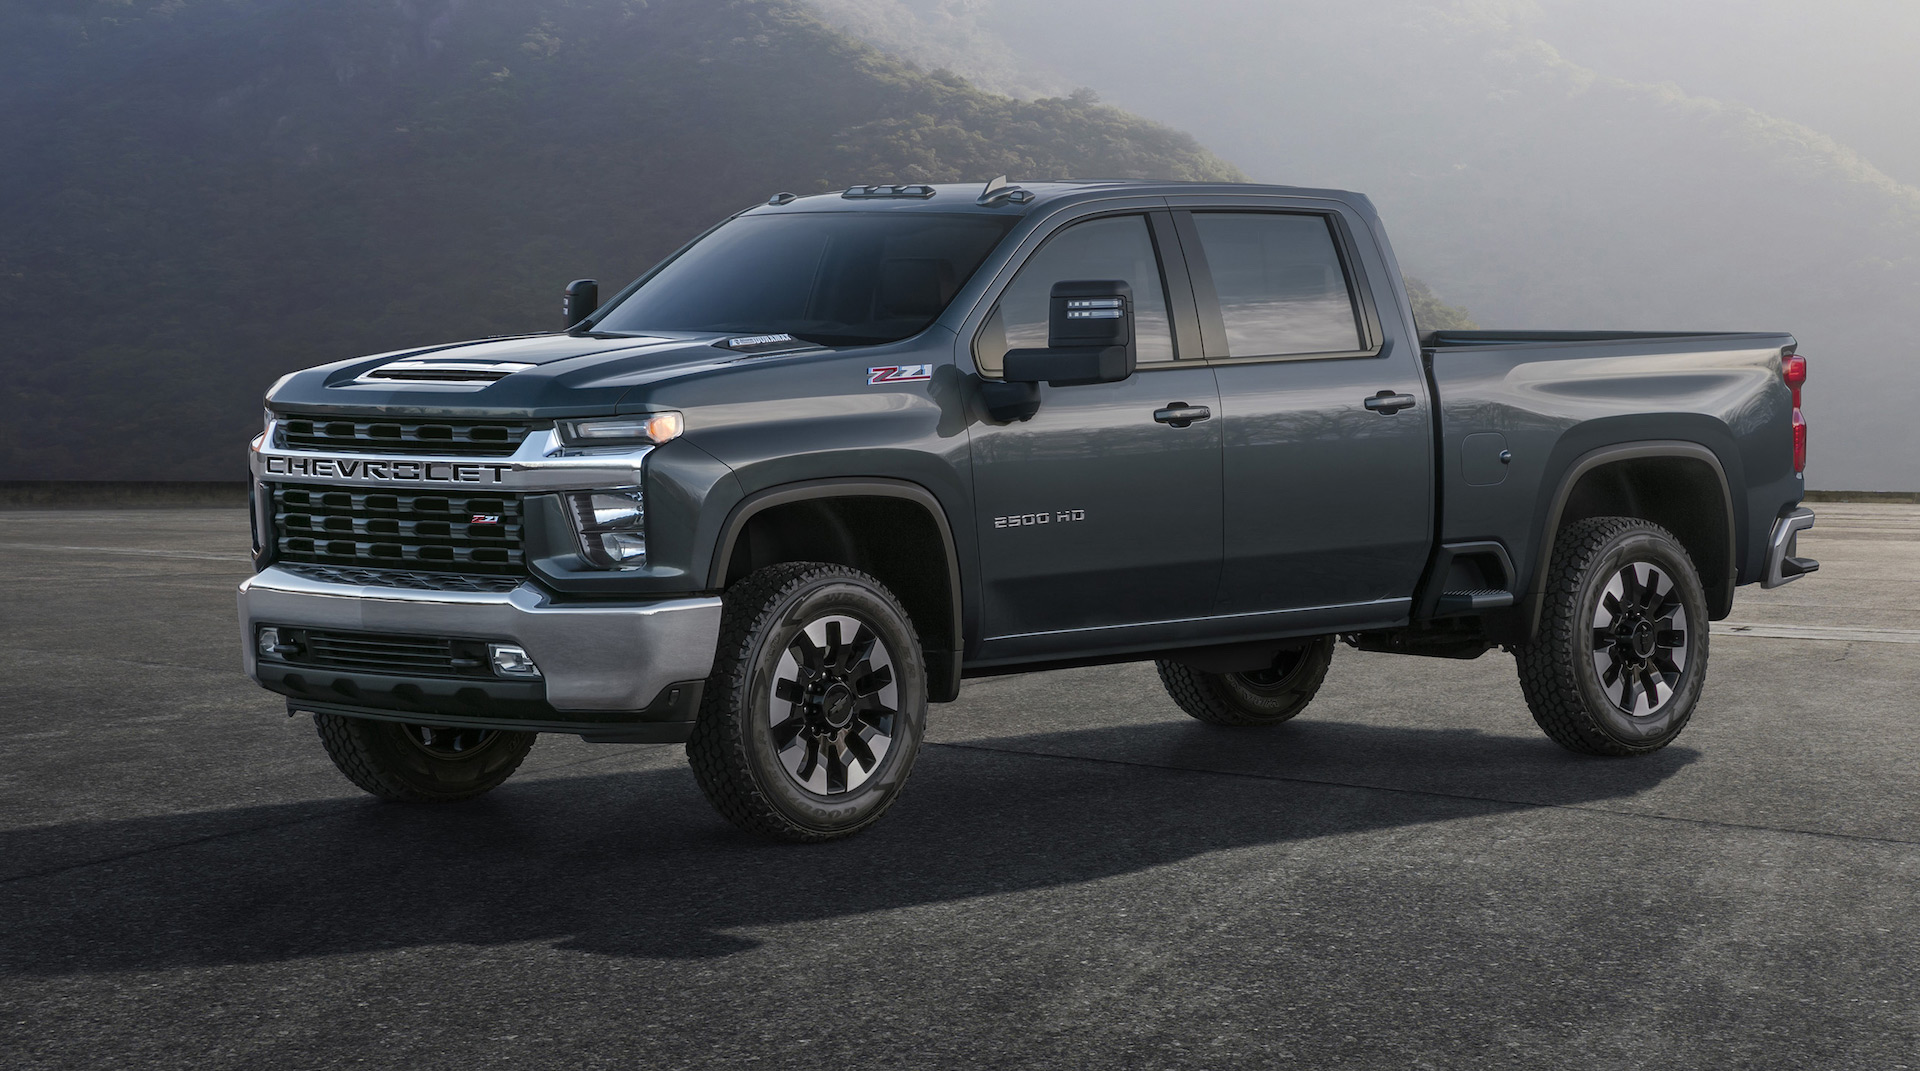 2020 Chevrolet Silverado Hd Revealed Big Face For Chevy S